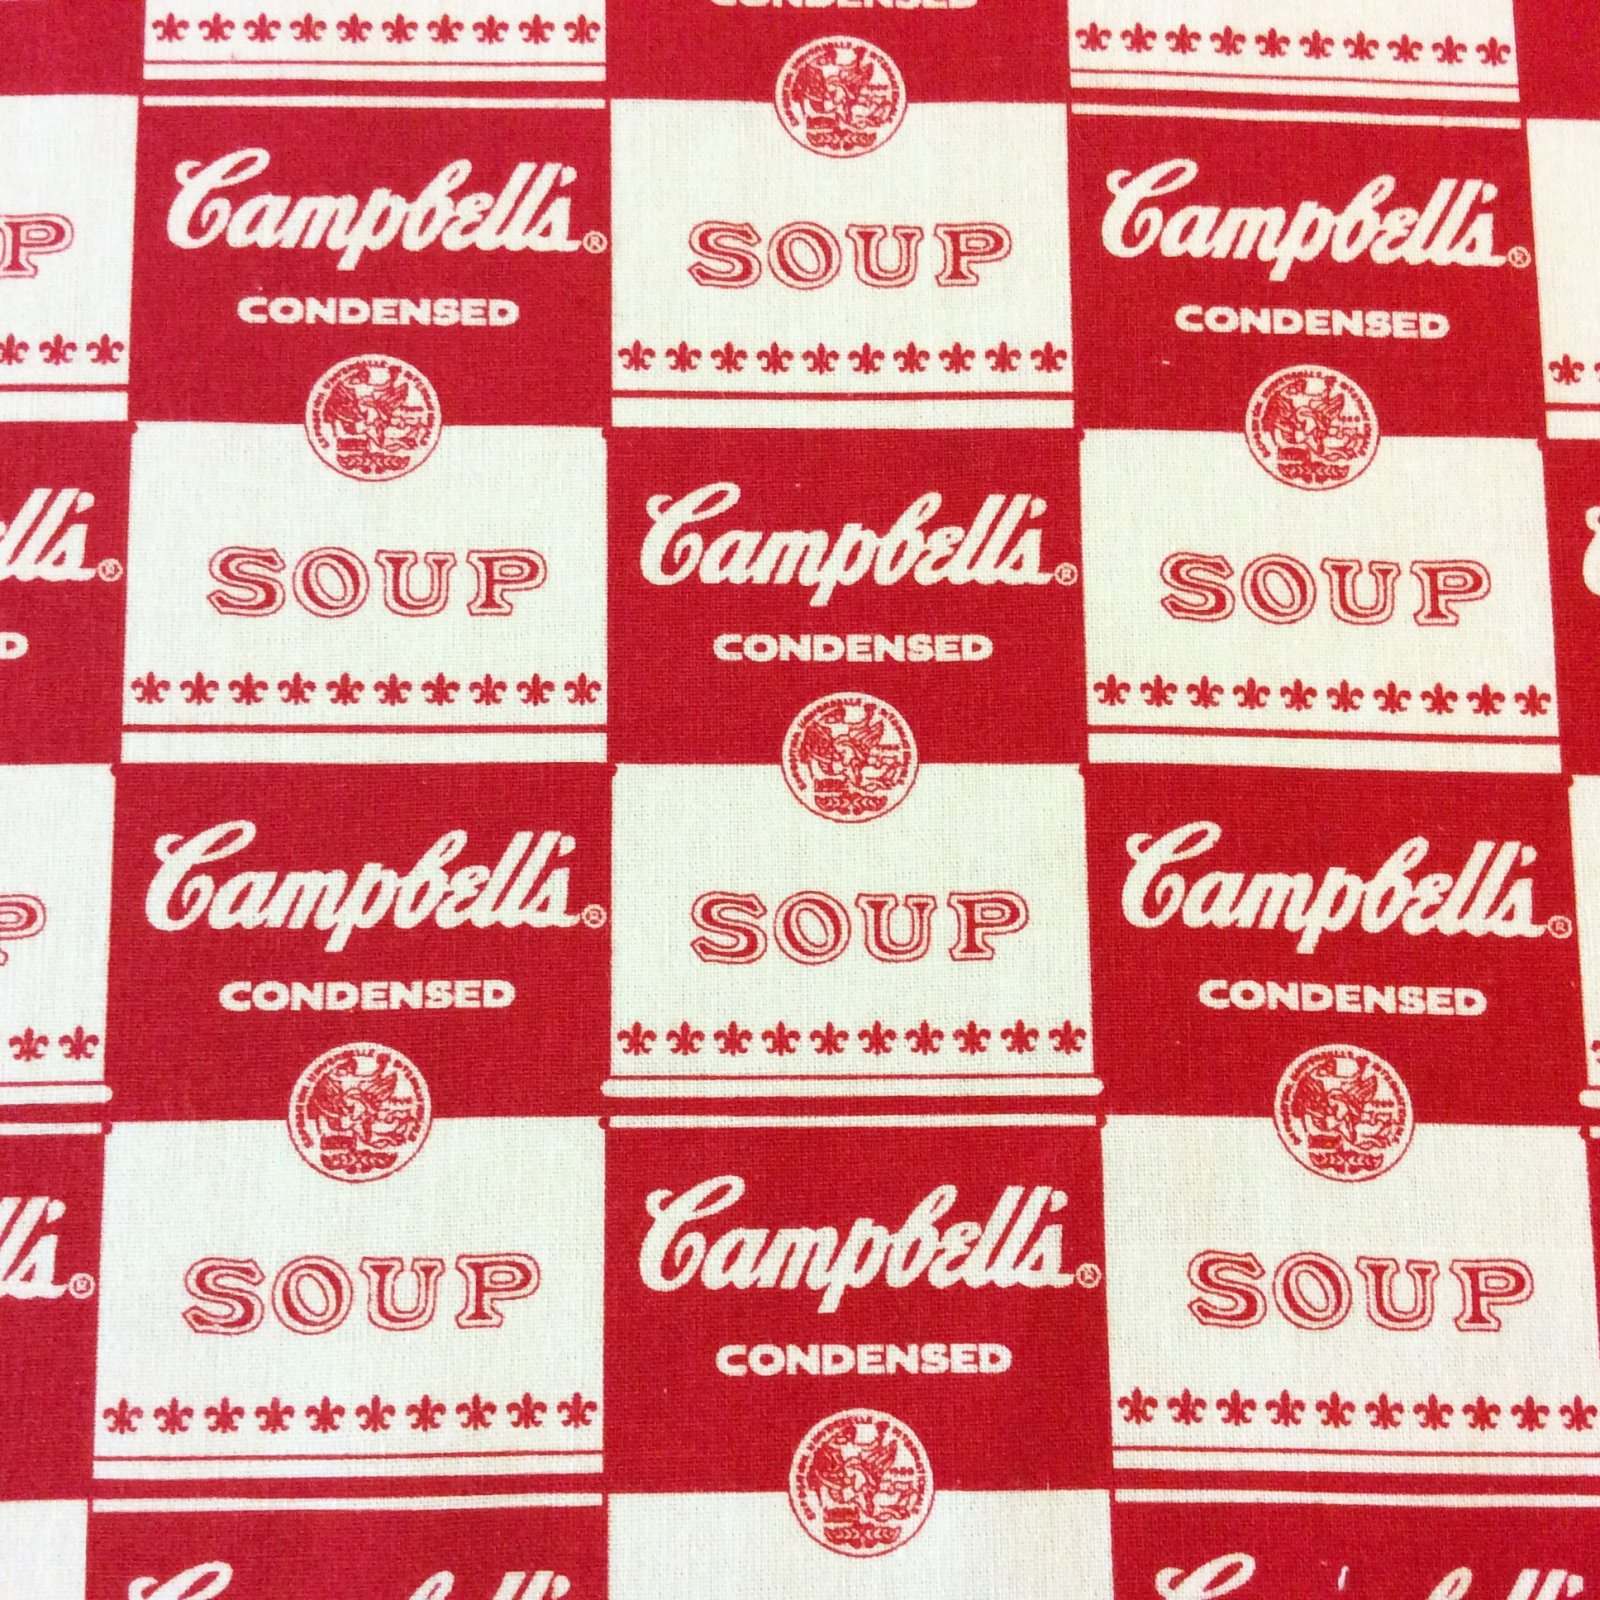 MD314 Campbell's Soup Food Retro Andy Warhol Pop Art America Cotton Quilt Fabric